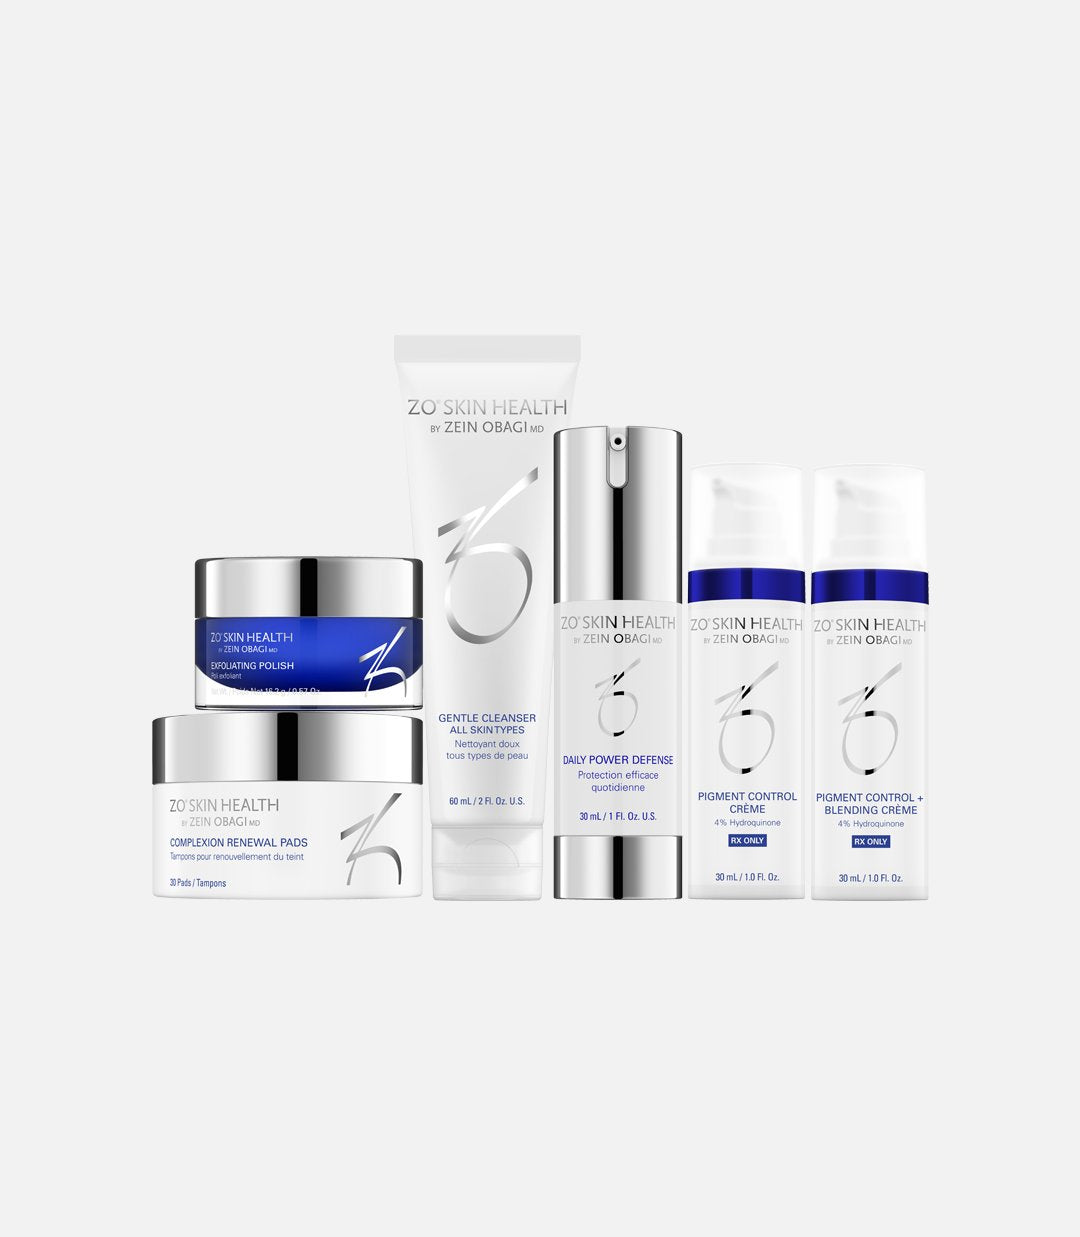 Pigment Control Program + Hydroquinone - 6 Product Regimen - 2